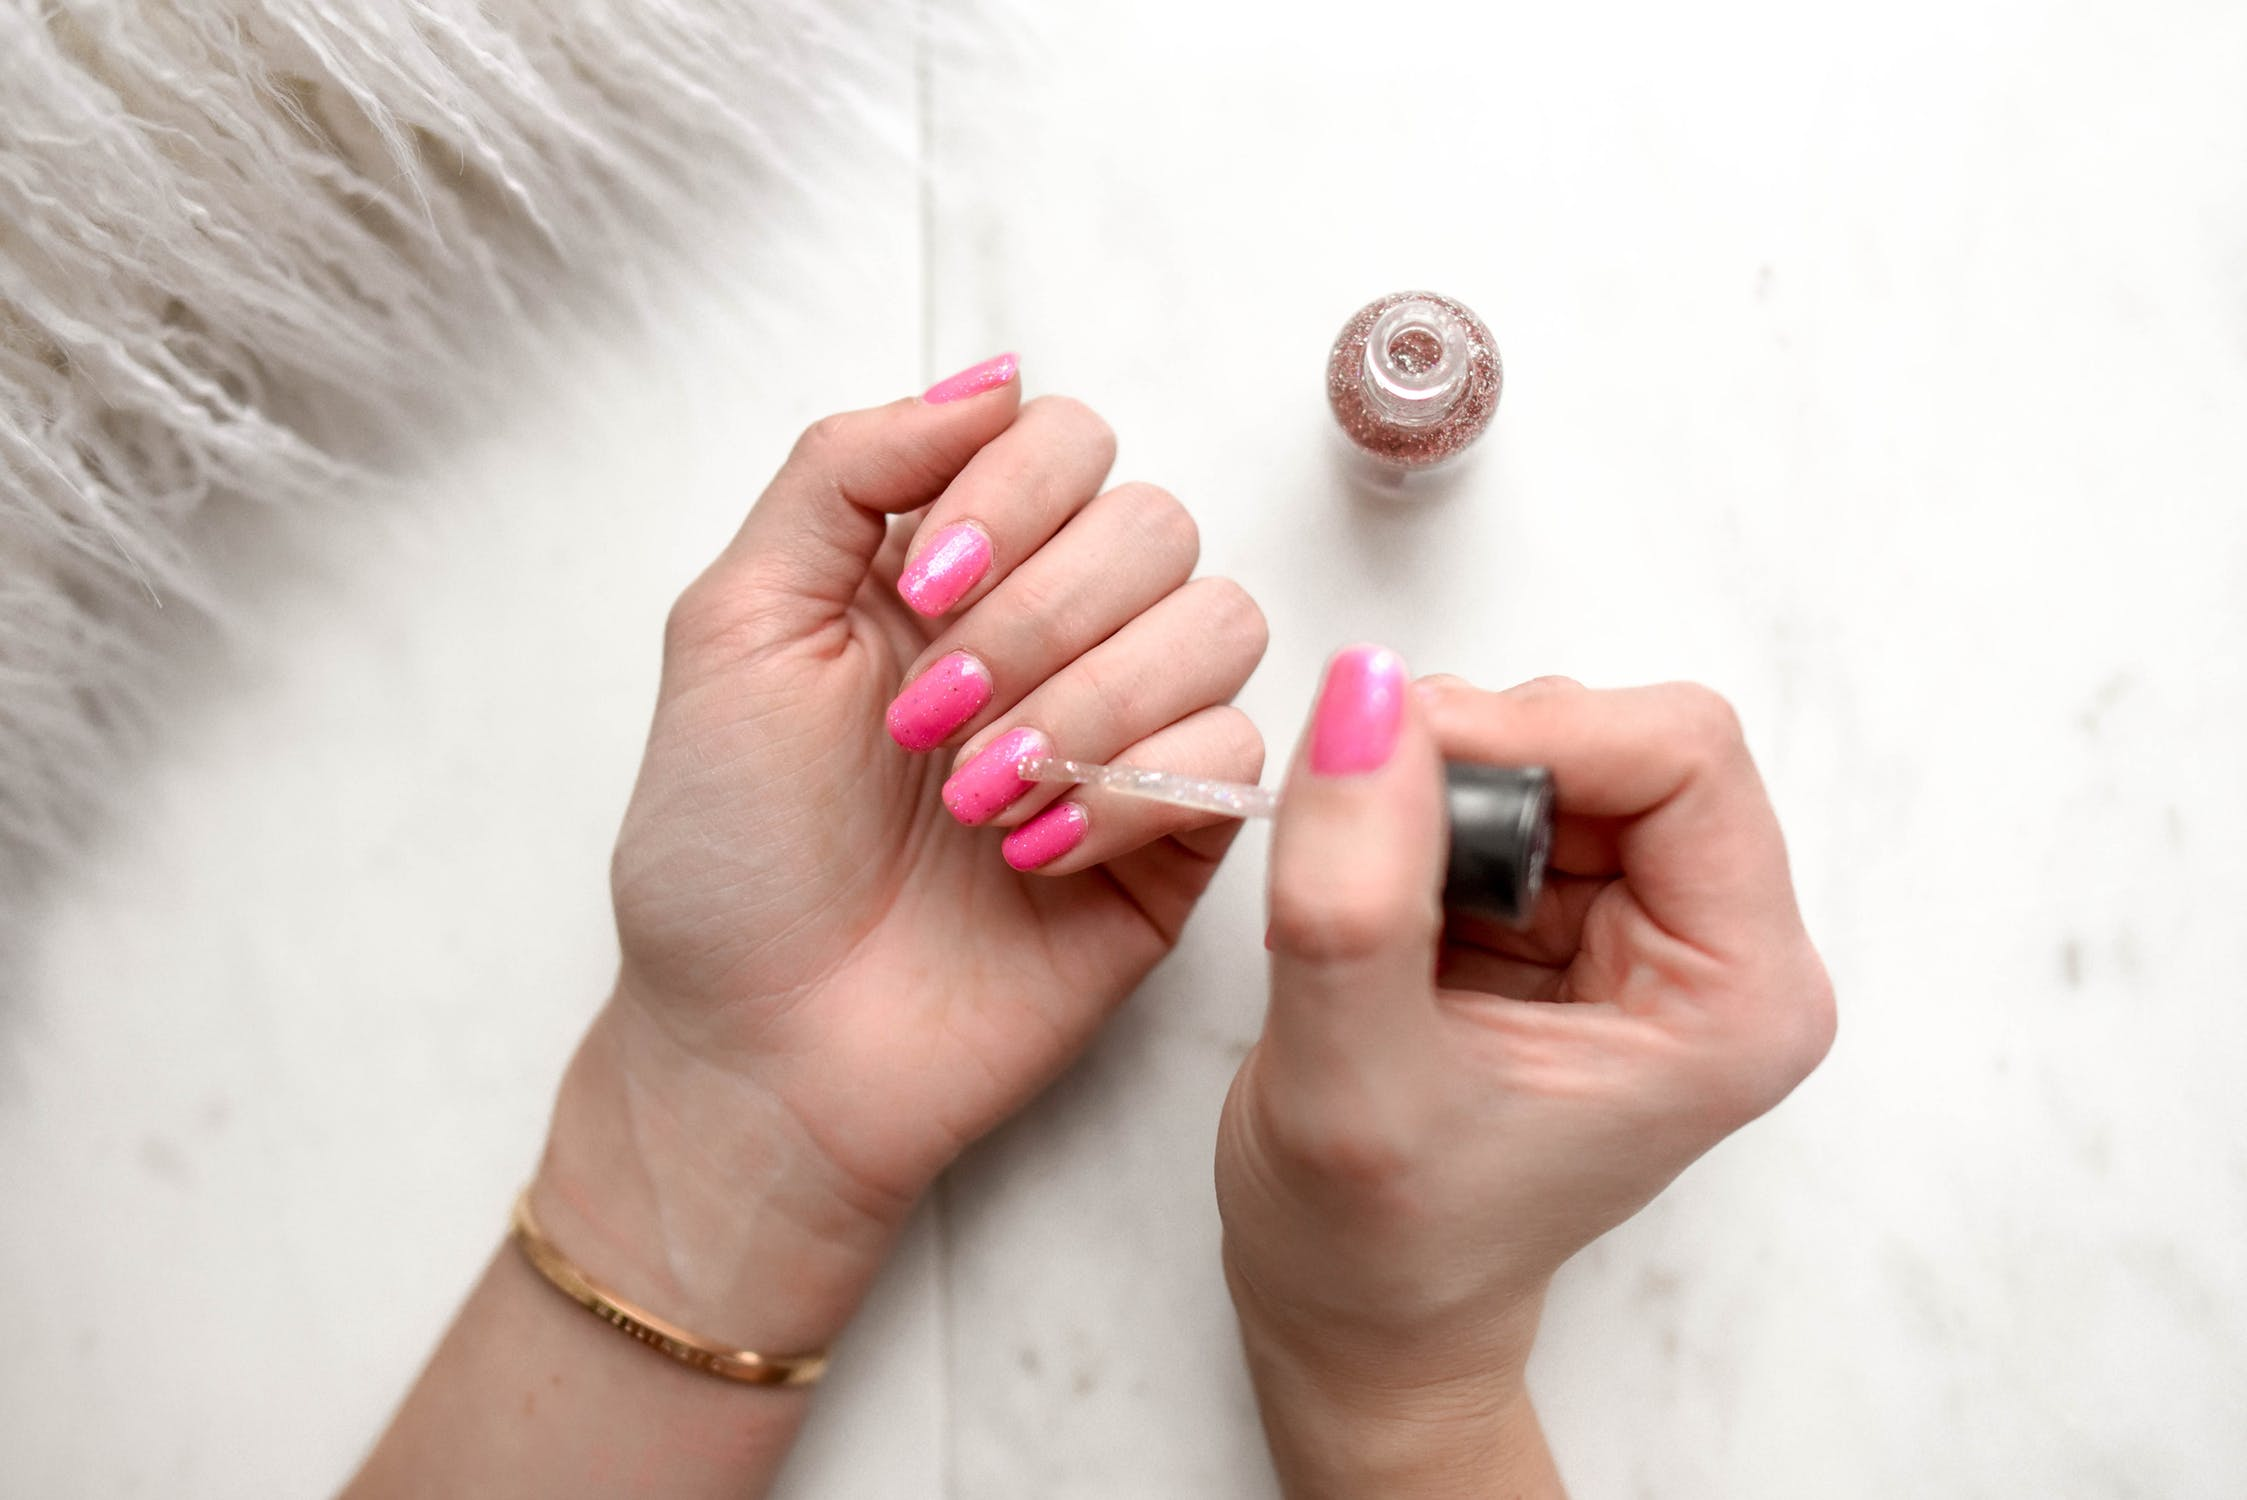 Factors that raise the risk of nail fungal infection